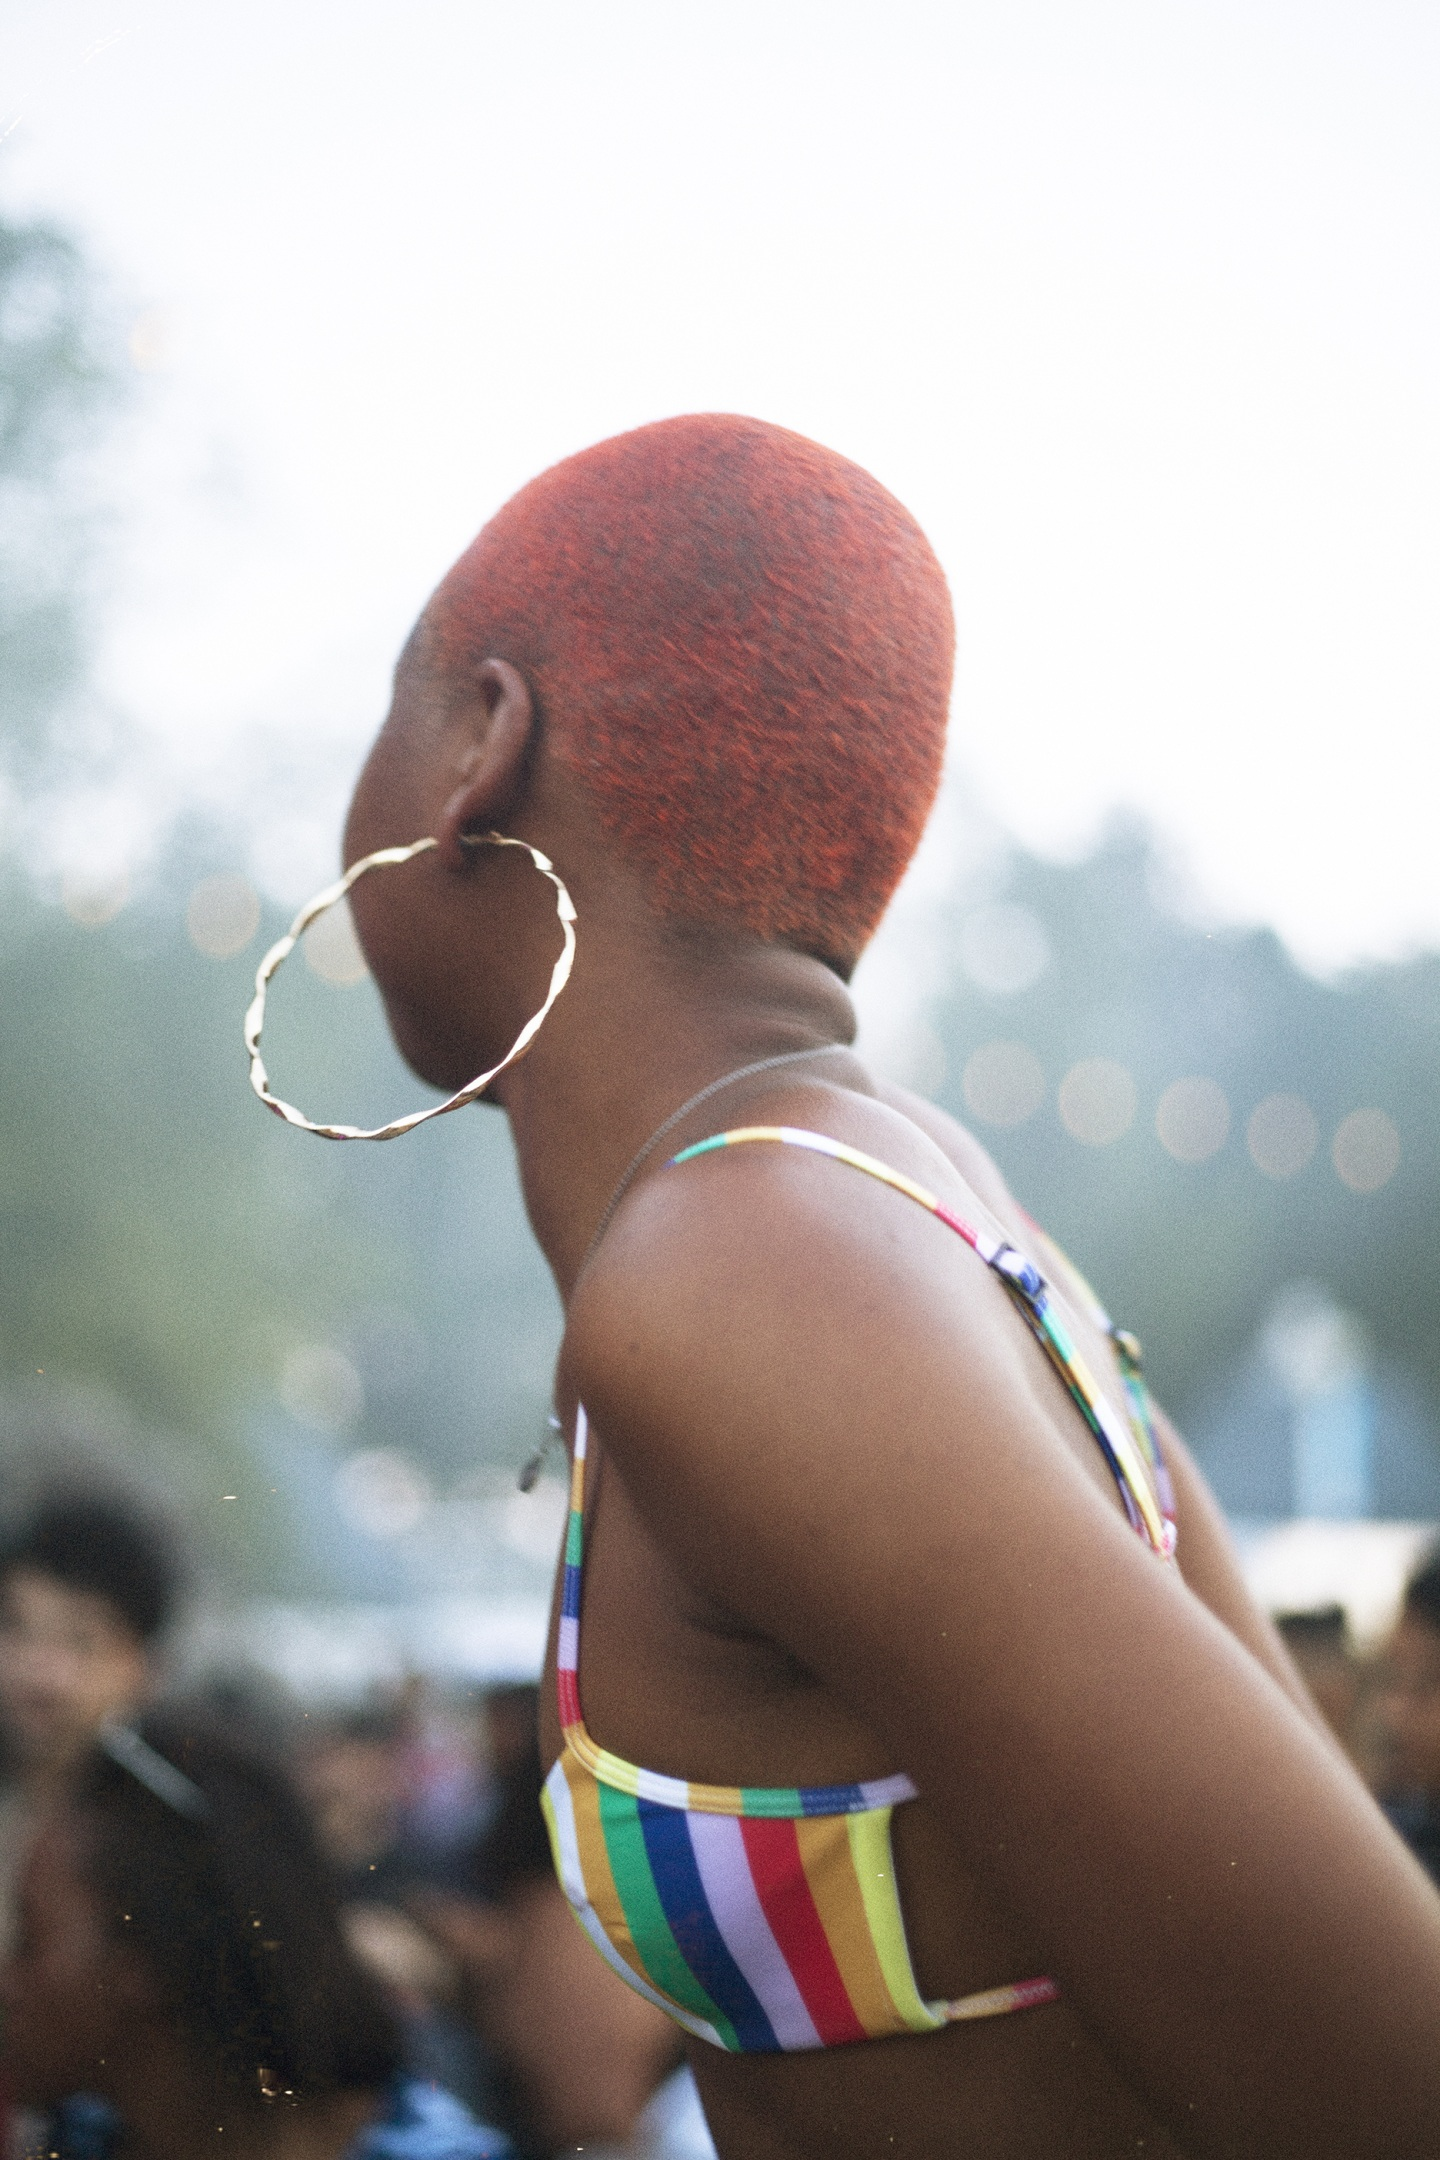 Toronto's JERK block party featured the breeziest Caribana style